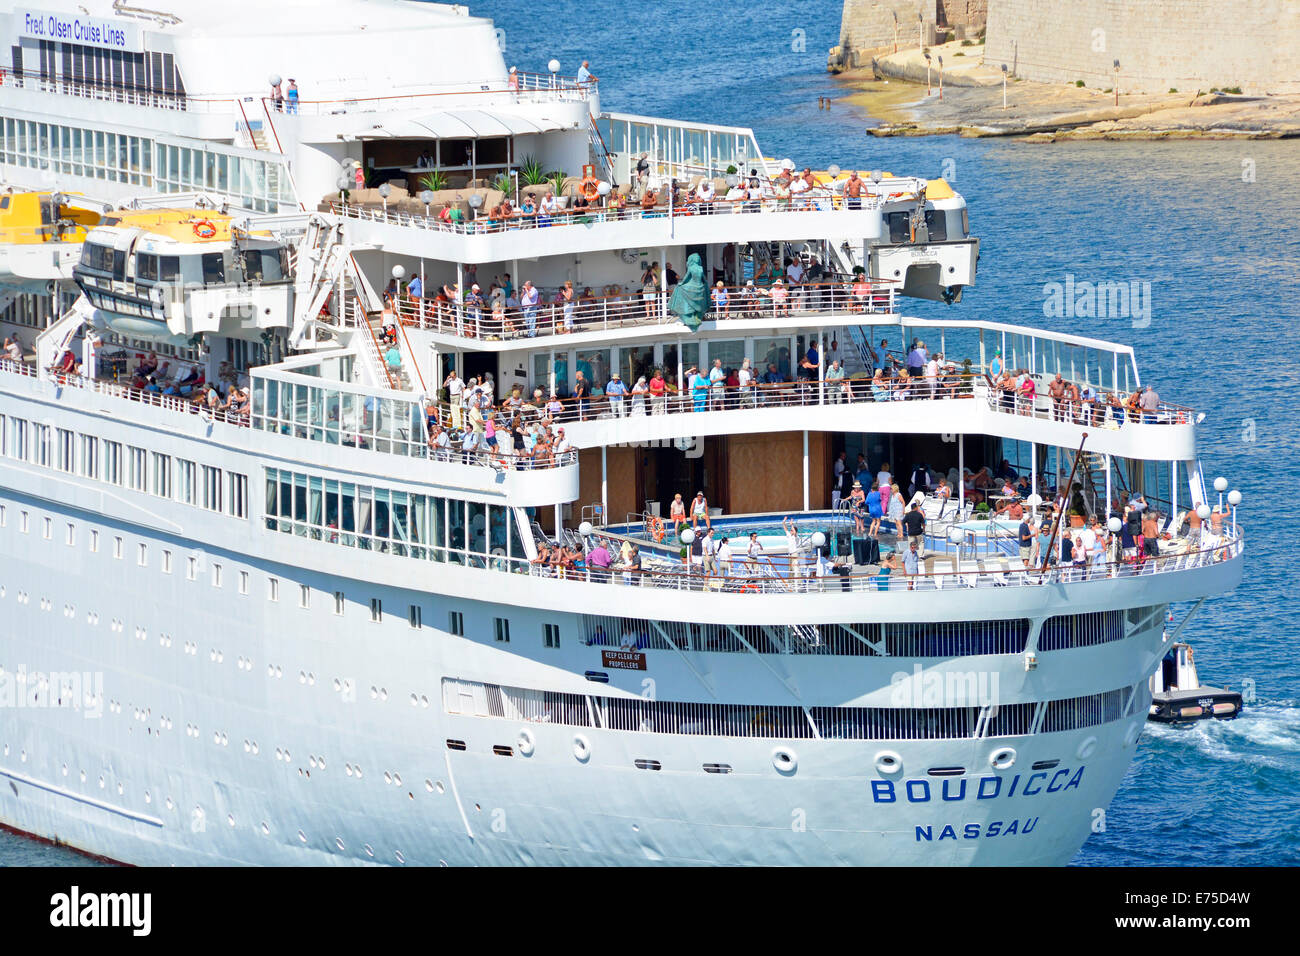 Passengers gathered on the stern decks of cruise ship Boudicca as she departs Grand Harbour Valletta Malta on a - Stock Image